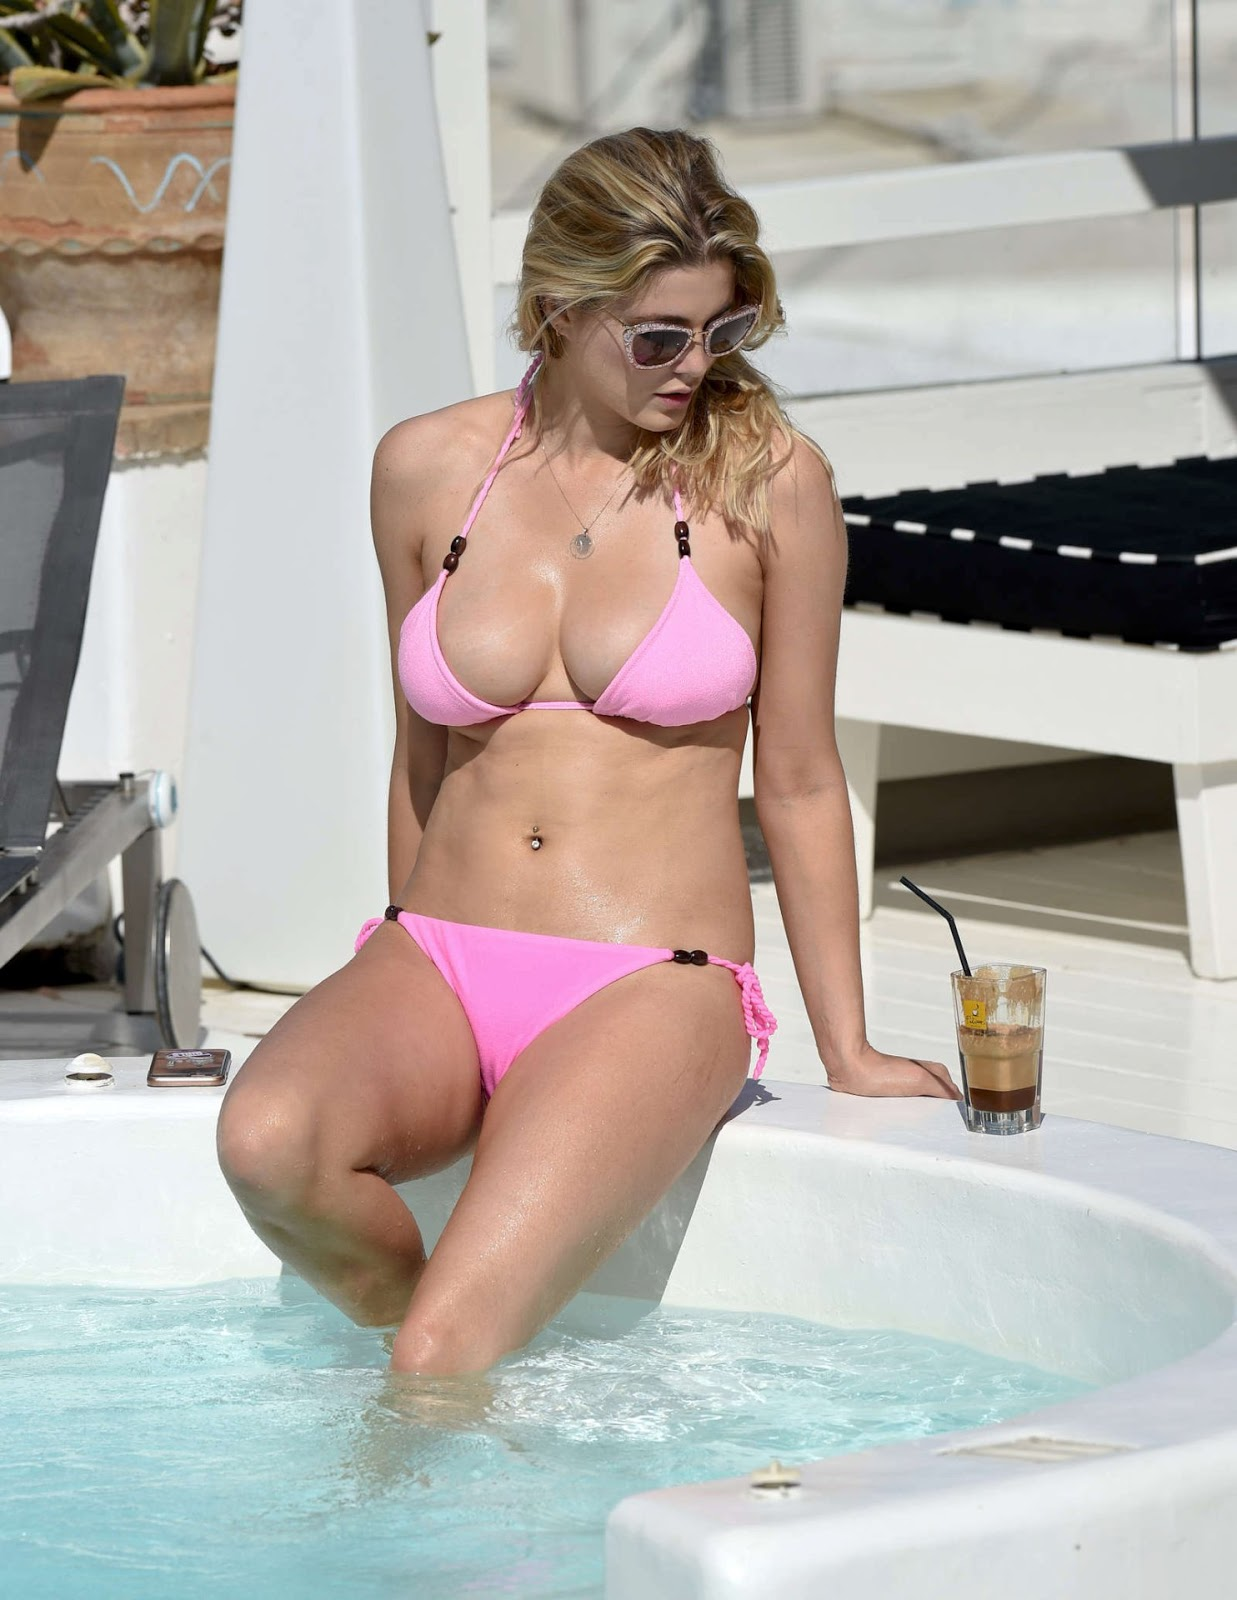 Ashley James gives a busty poolside appearance in Greece